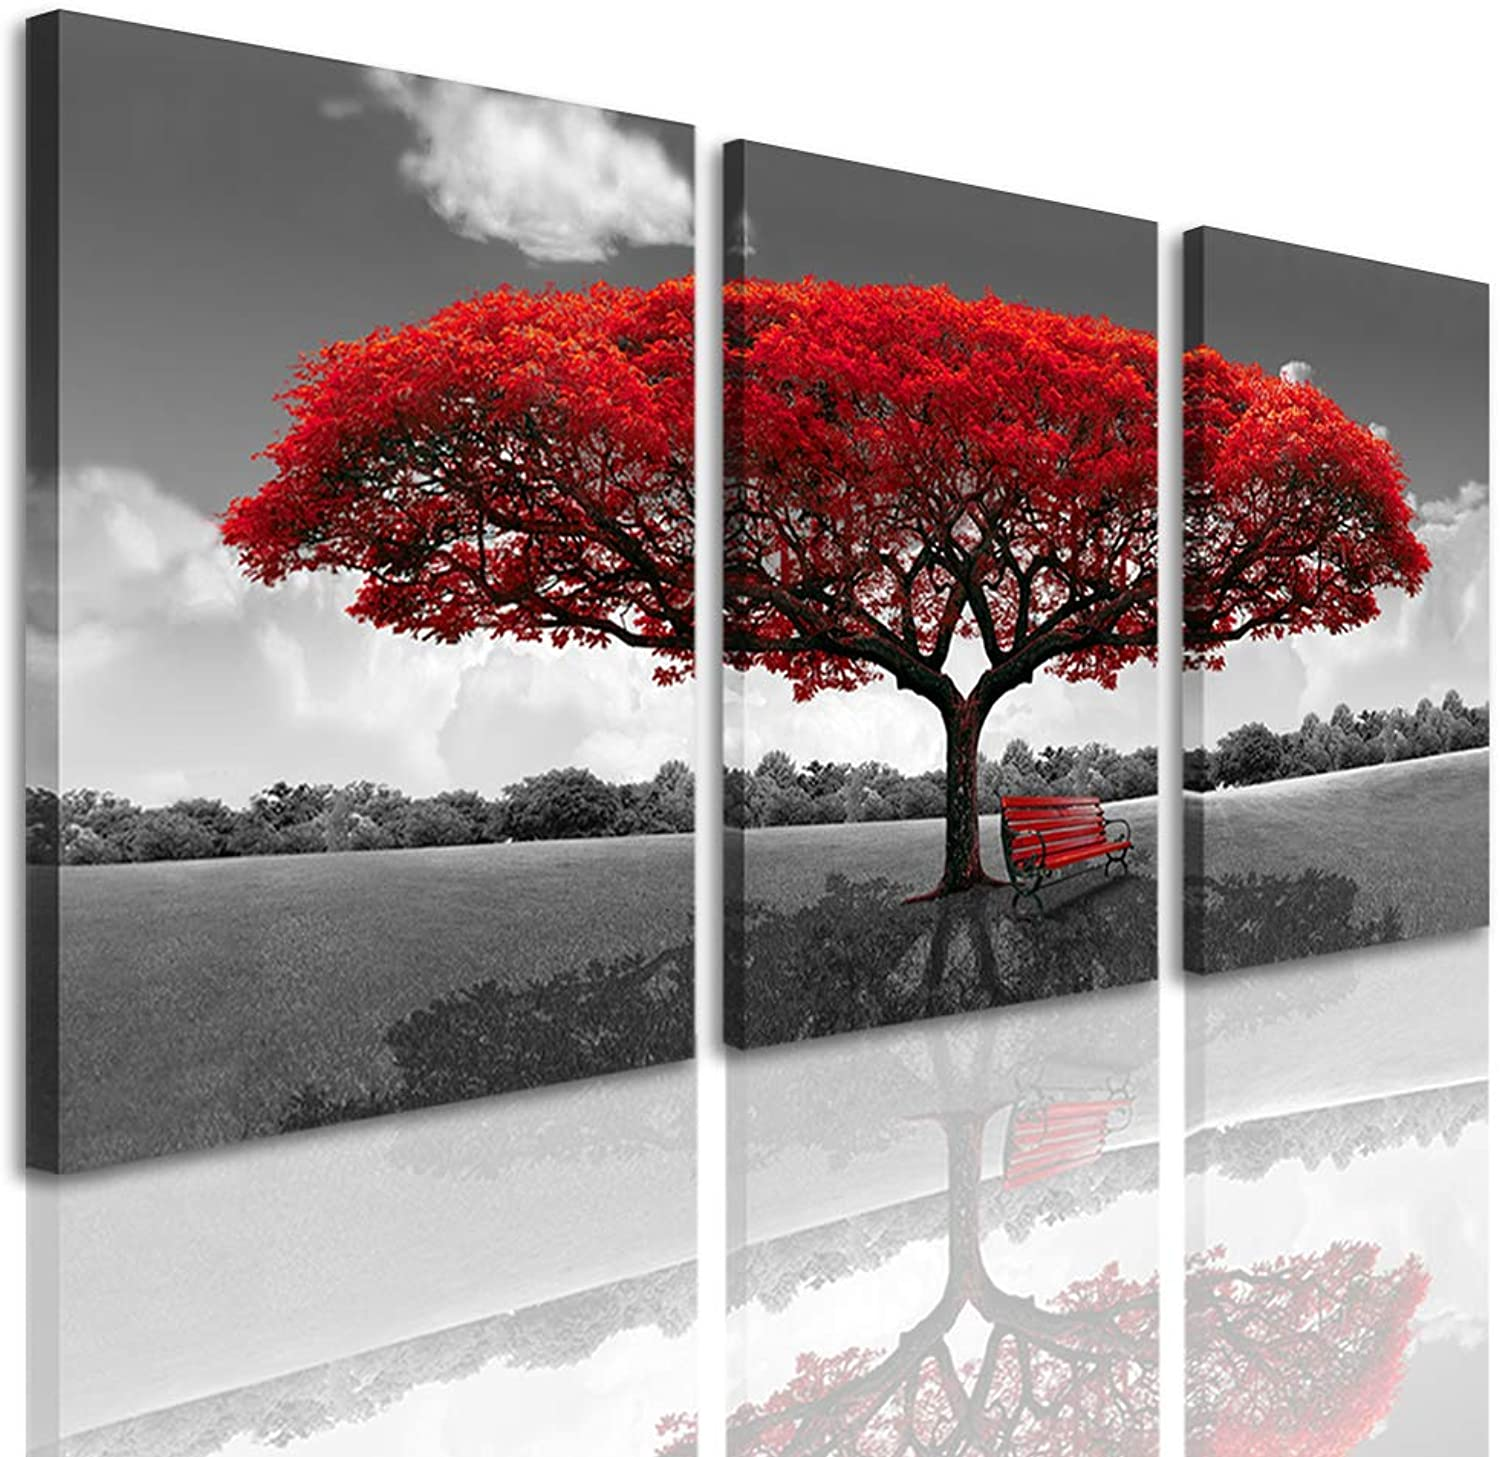 Amosi Art 3 Panels rot rot rot Tree Canvas Prints Wall Art Landscape Framed Art Modern Home Living Room Decoration 20inx28in B071KPDM3J 46a234